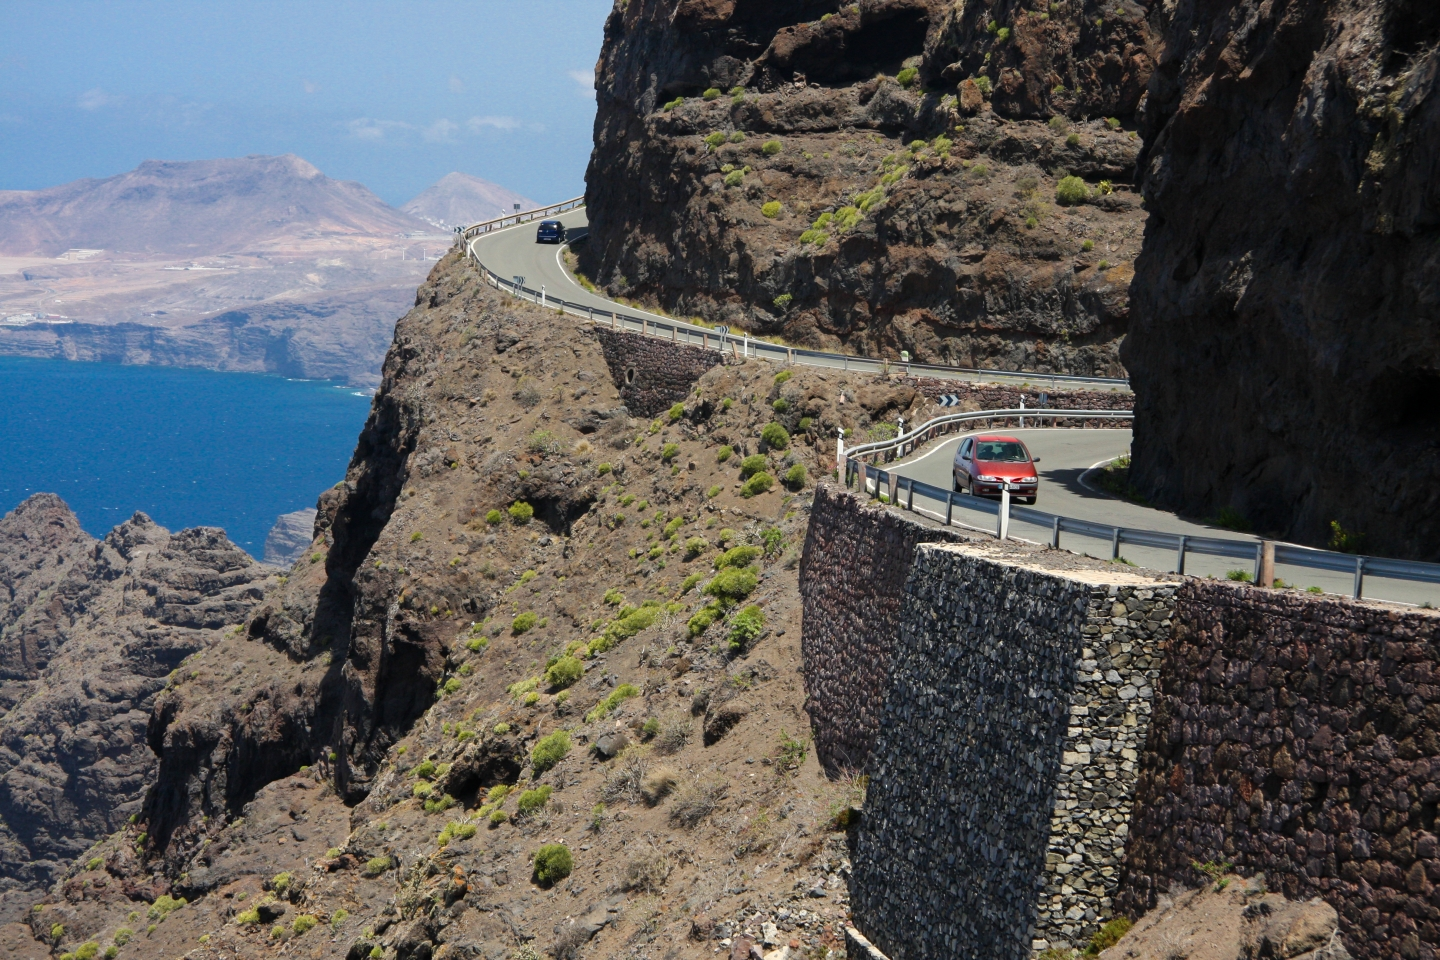 The GC 200 west coast road in Gran Canaria